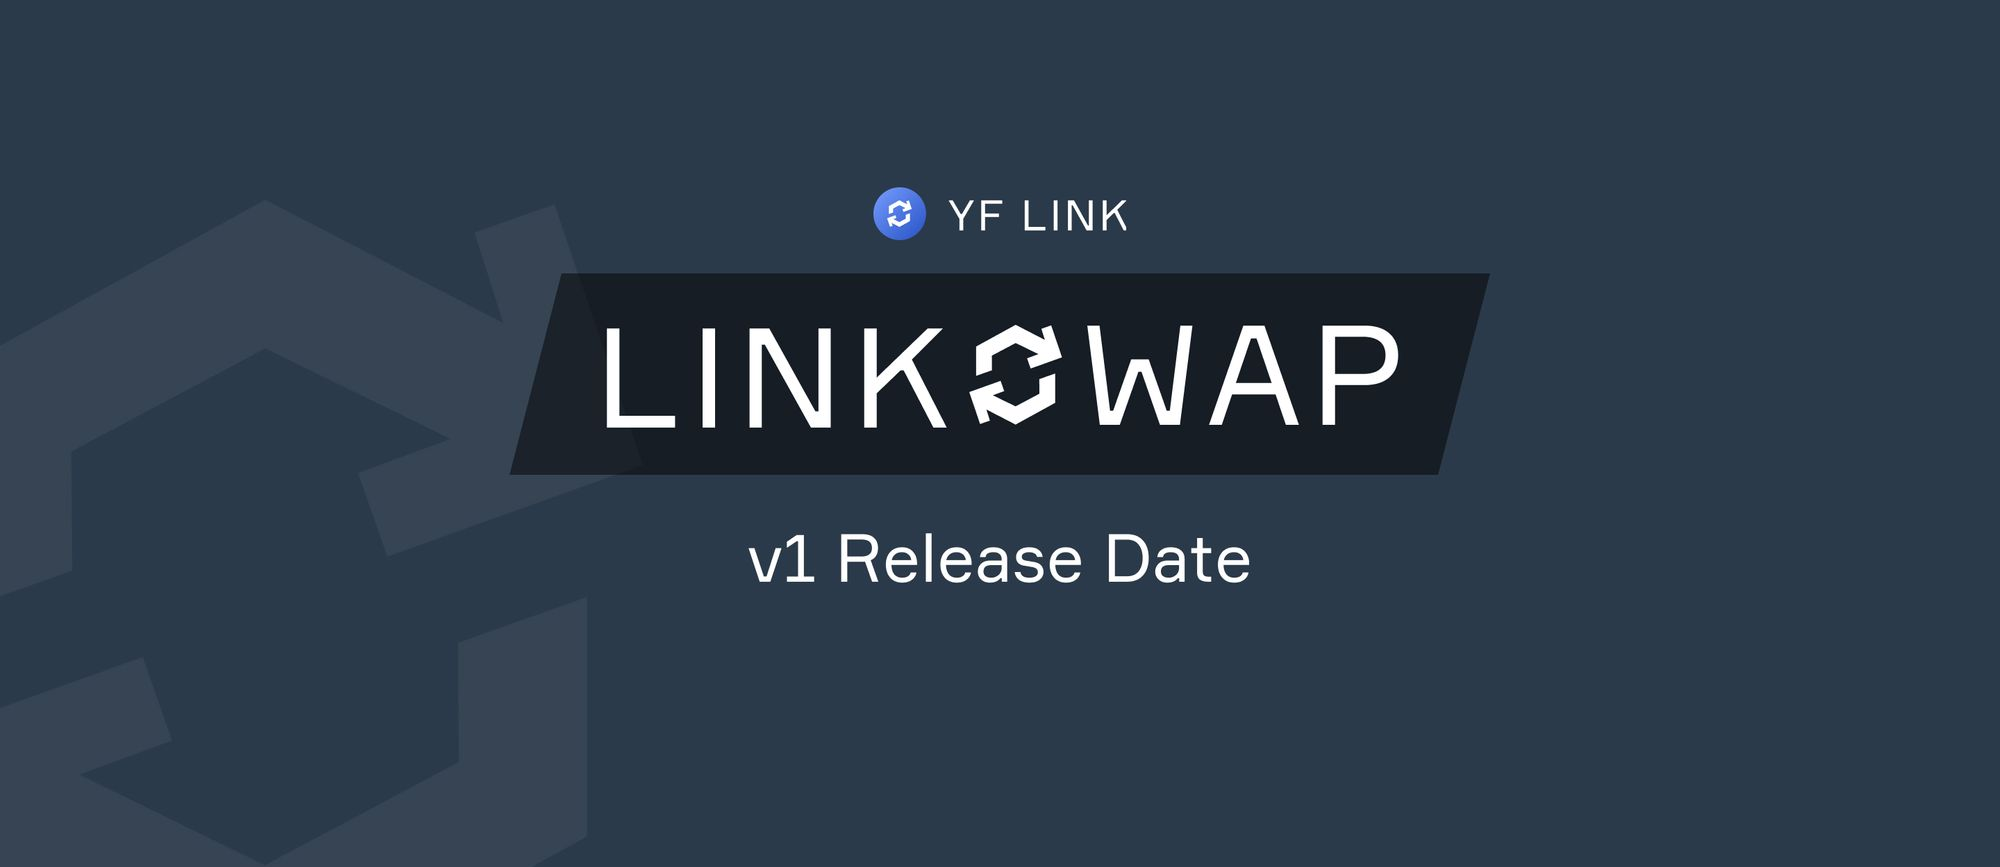 LINKSWAP Announcement & Official Release Date